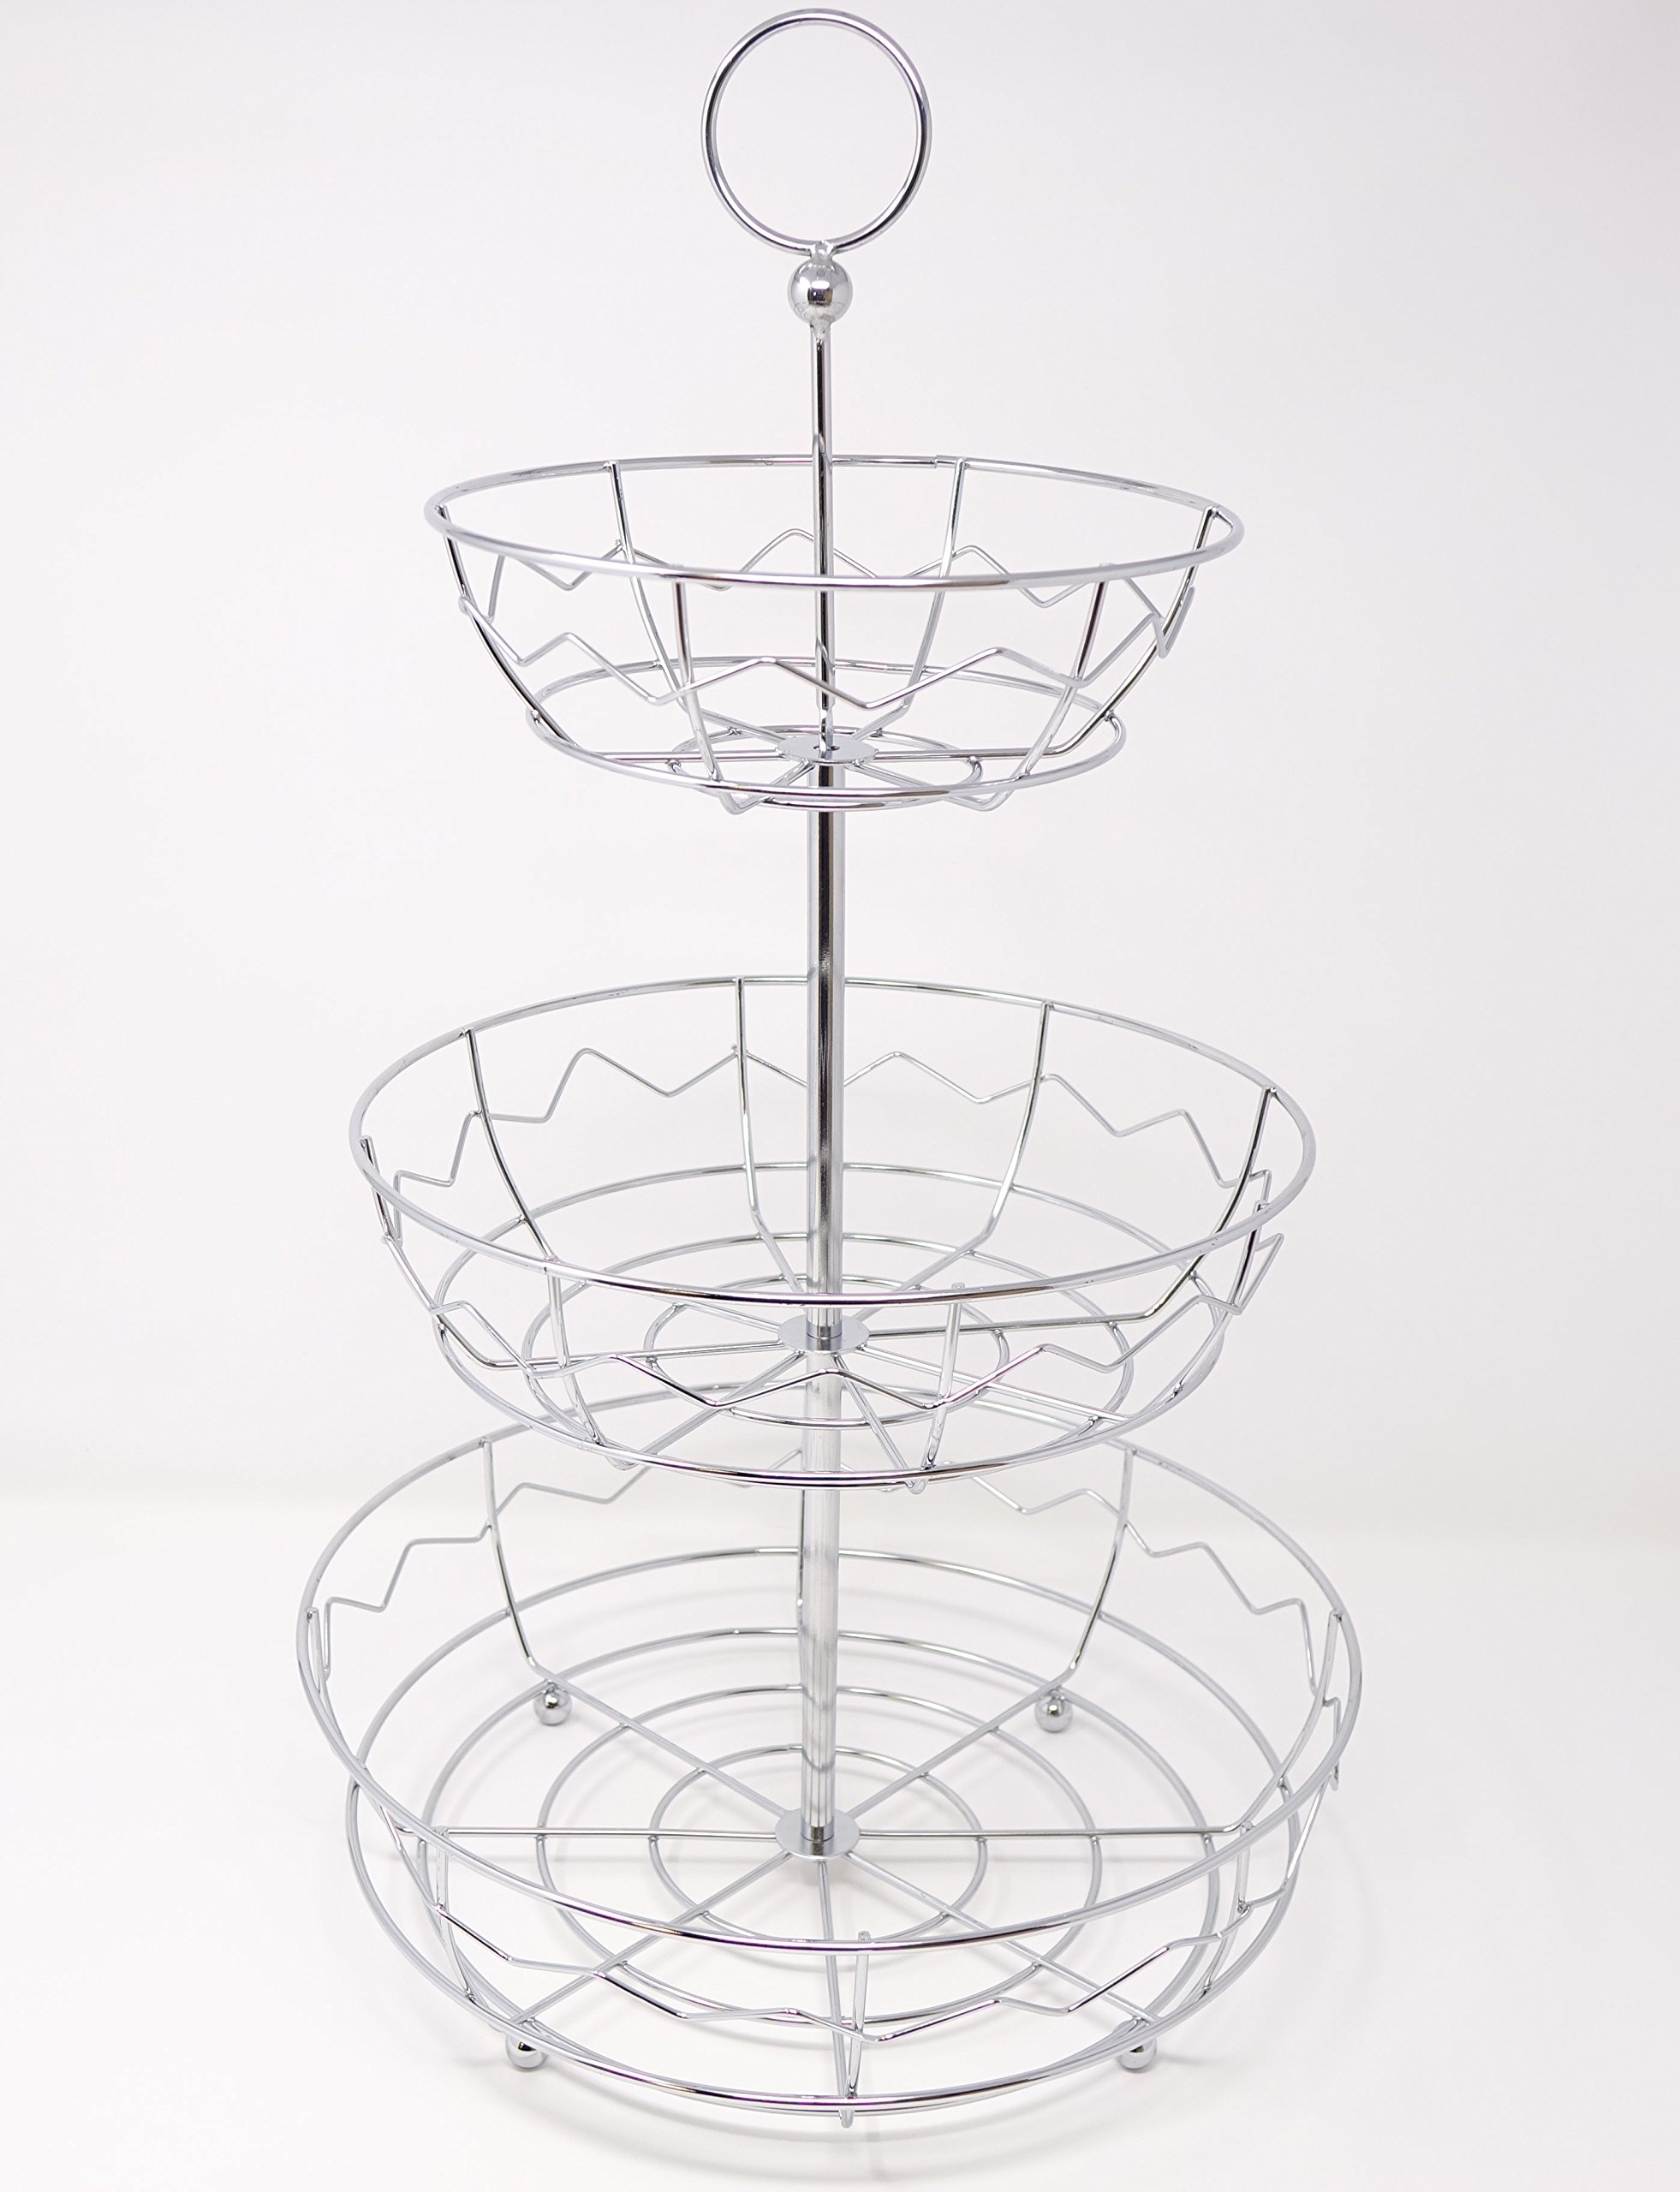 New Home Deal Stainless Steel Collapsible Multi Tiered Fruit Basket (3 Tier, Zig-Zag)